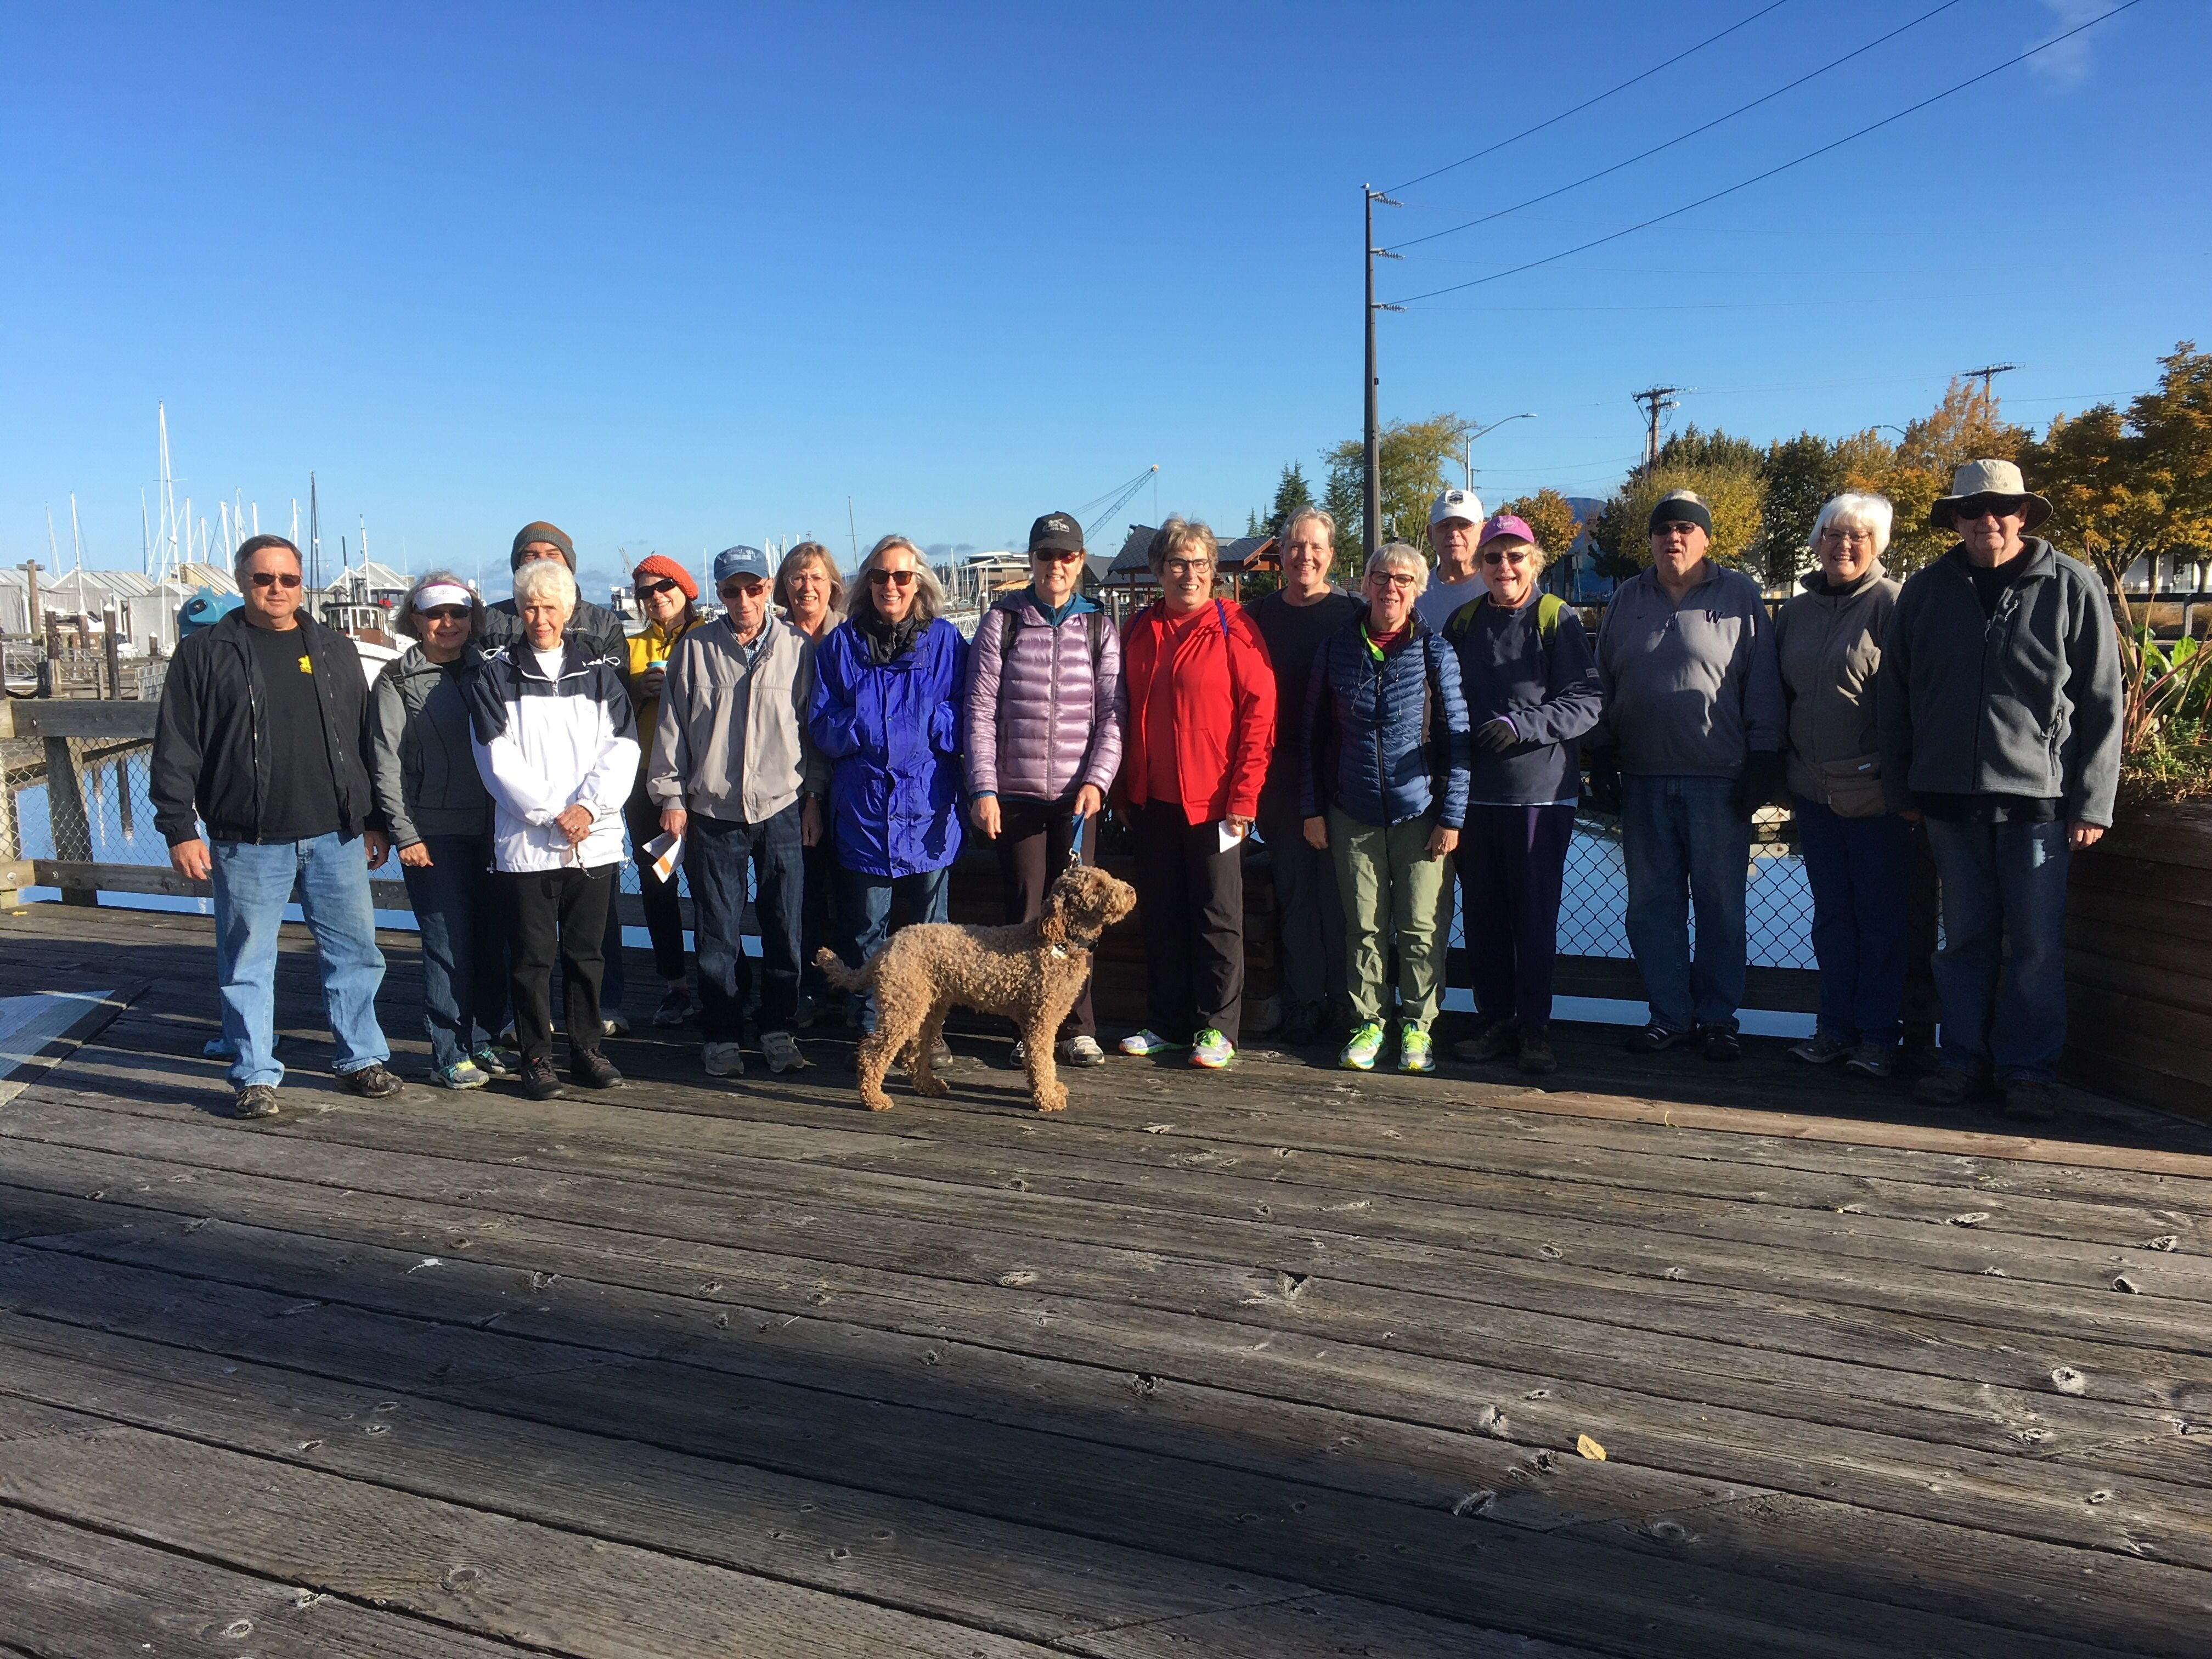 South Sound Walkers Meetup Group